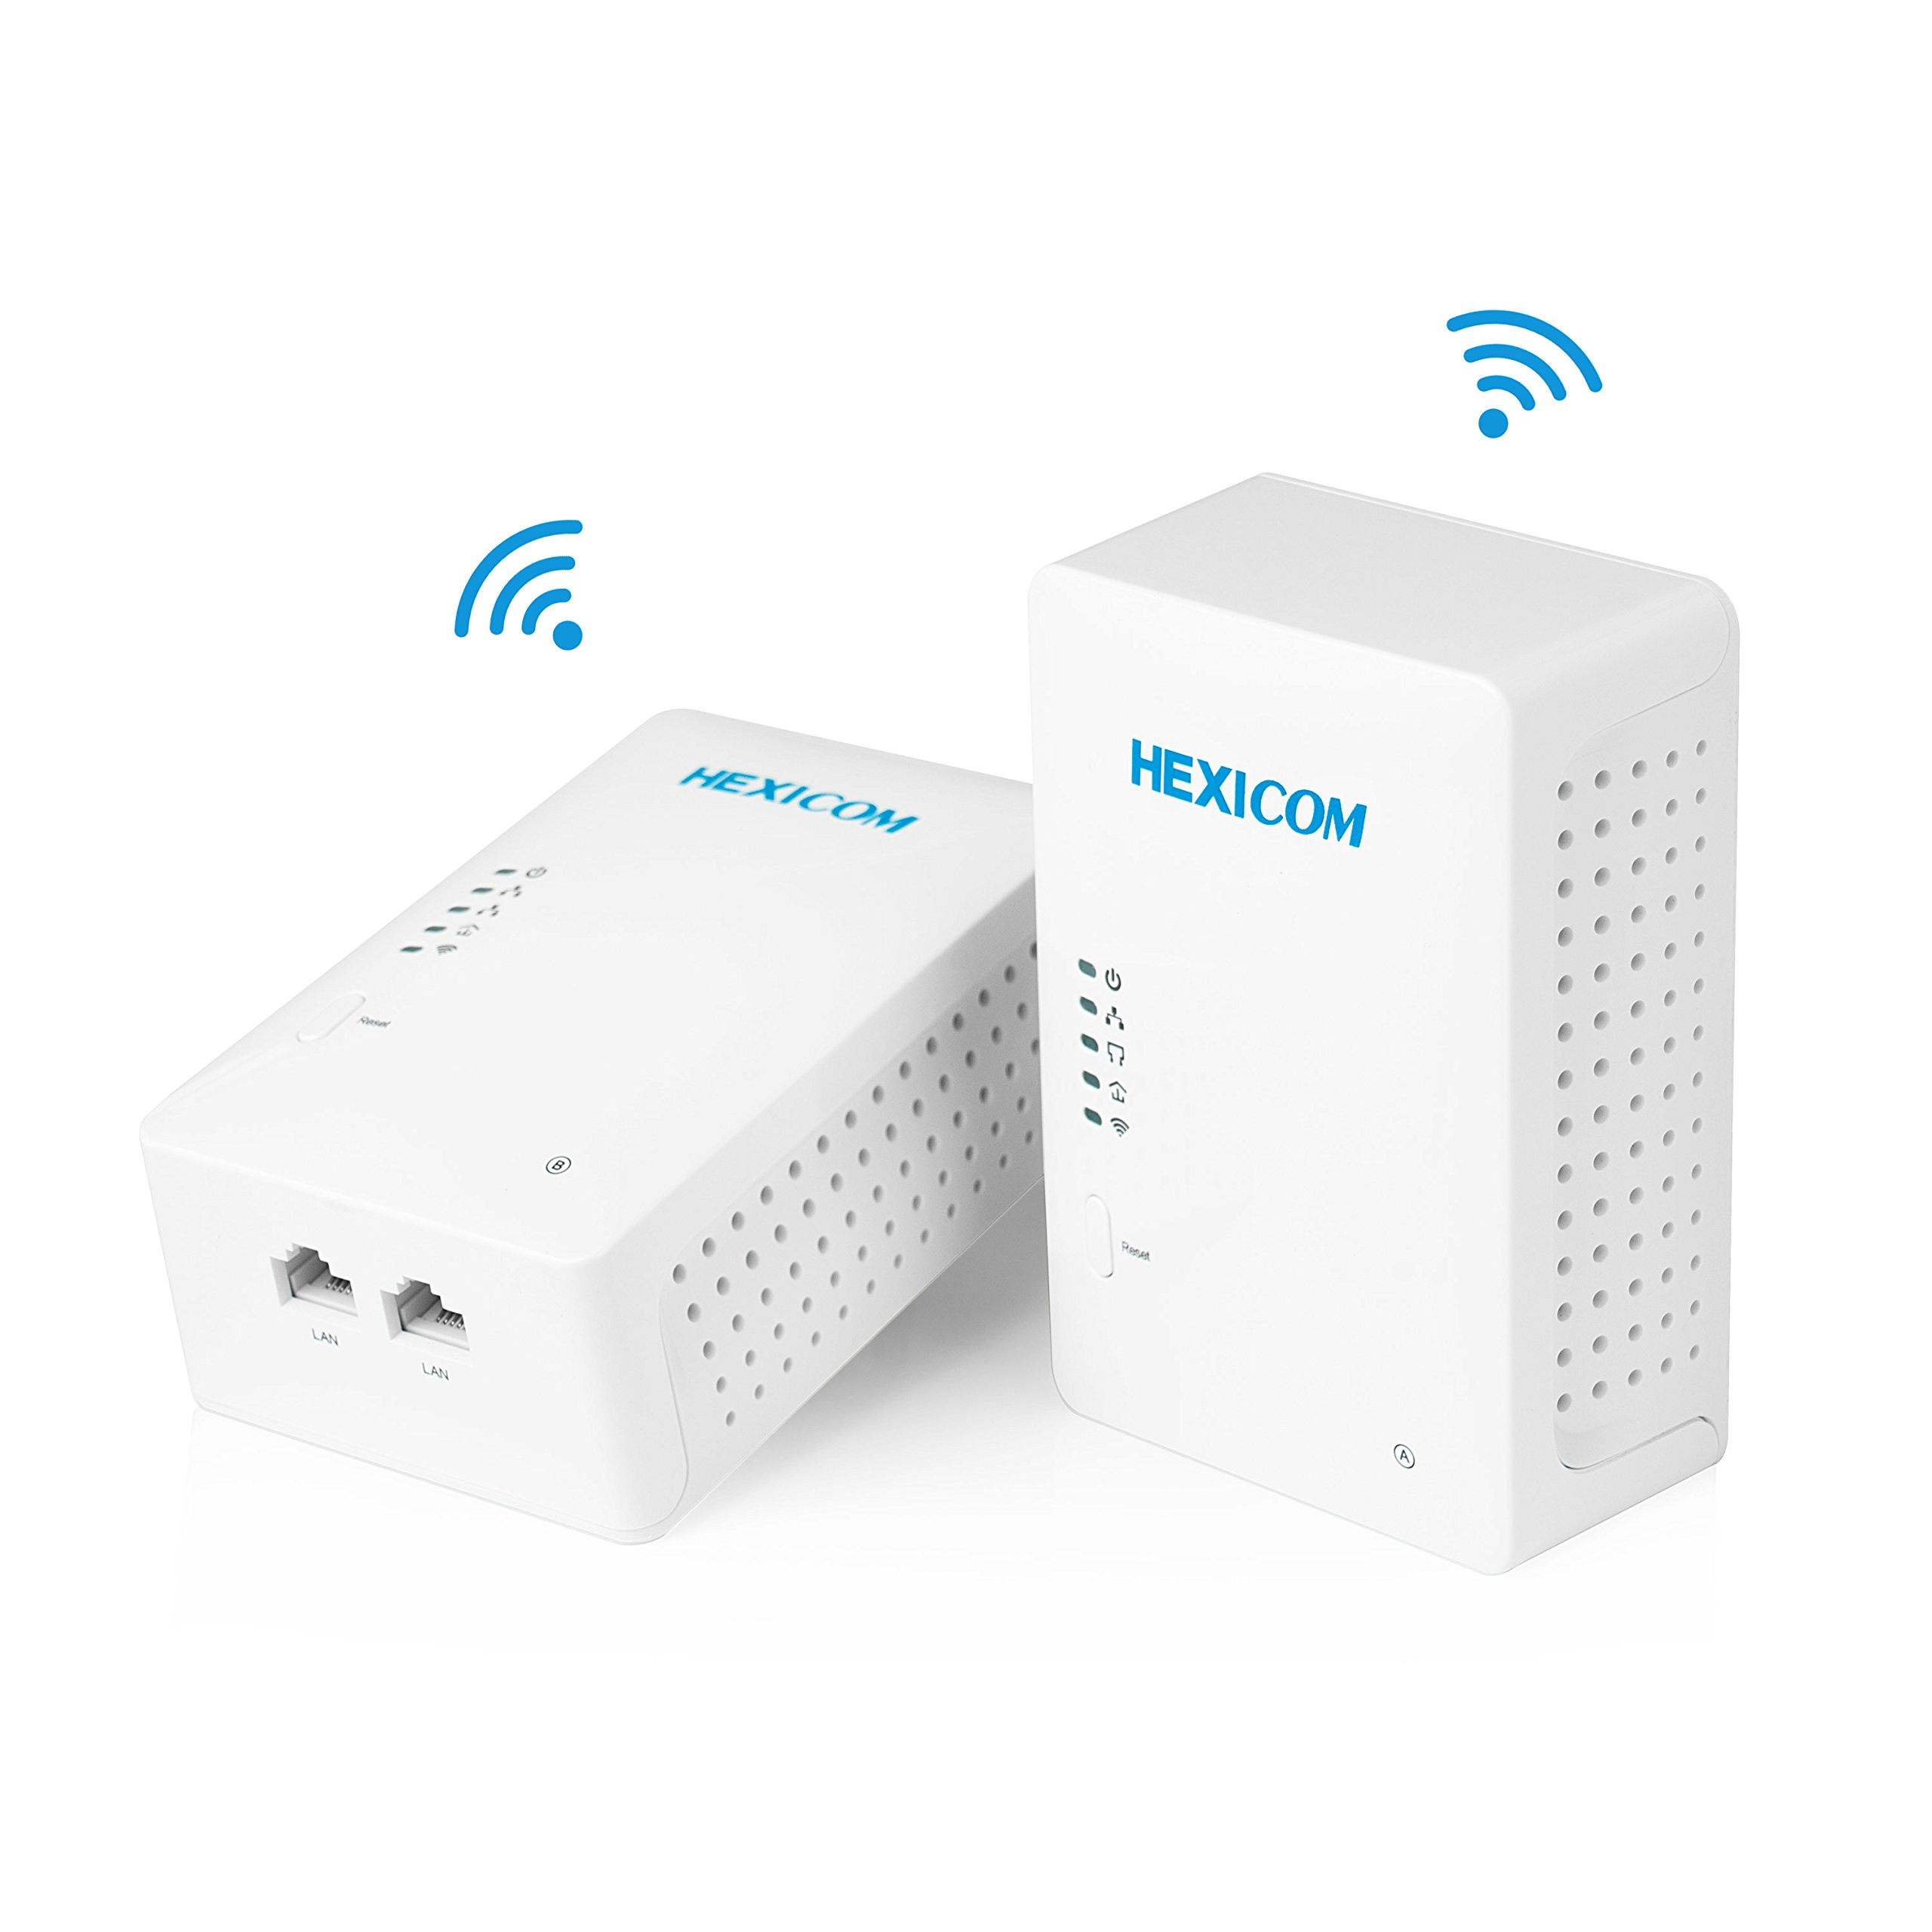 HEXICOM Av 500 Mbps Powerline Adapter with WiFi (Both with WiFi Support) Kit with IPTV Homeplug Bridge PLC 2 LAN Ports(HM500WE/HS500WE) by HEXICOM